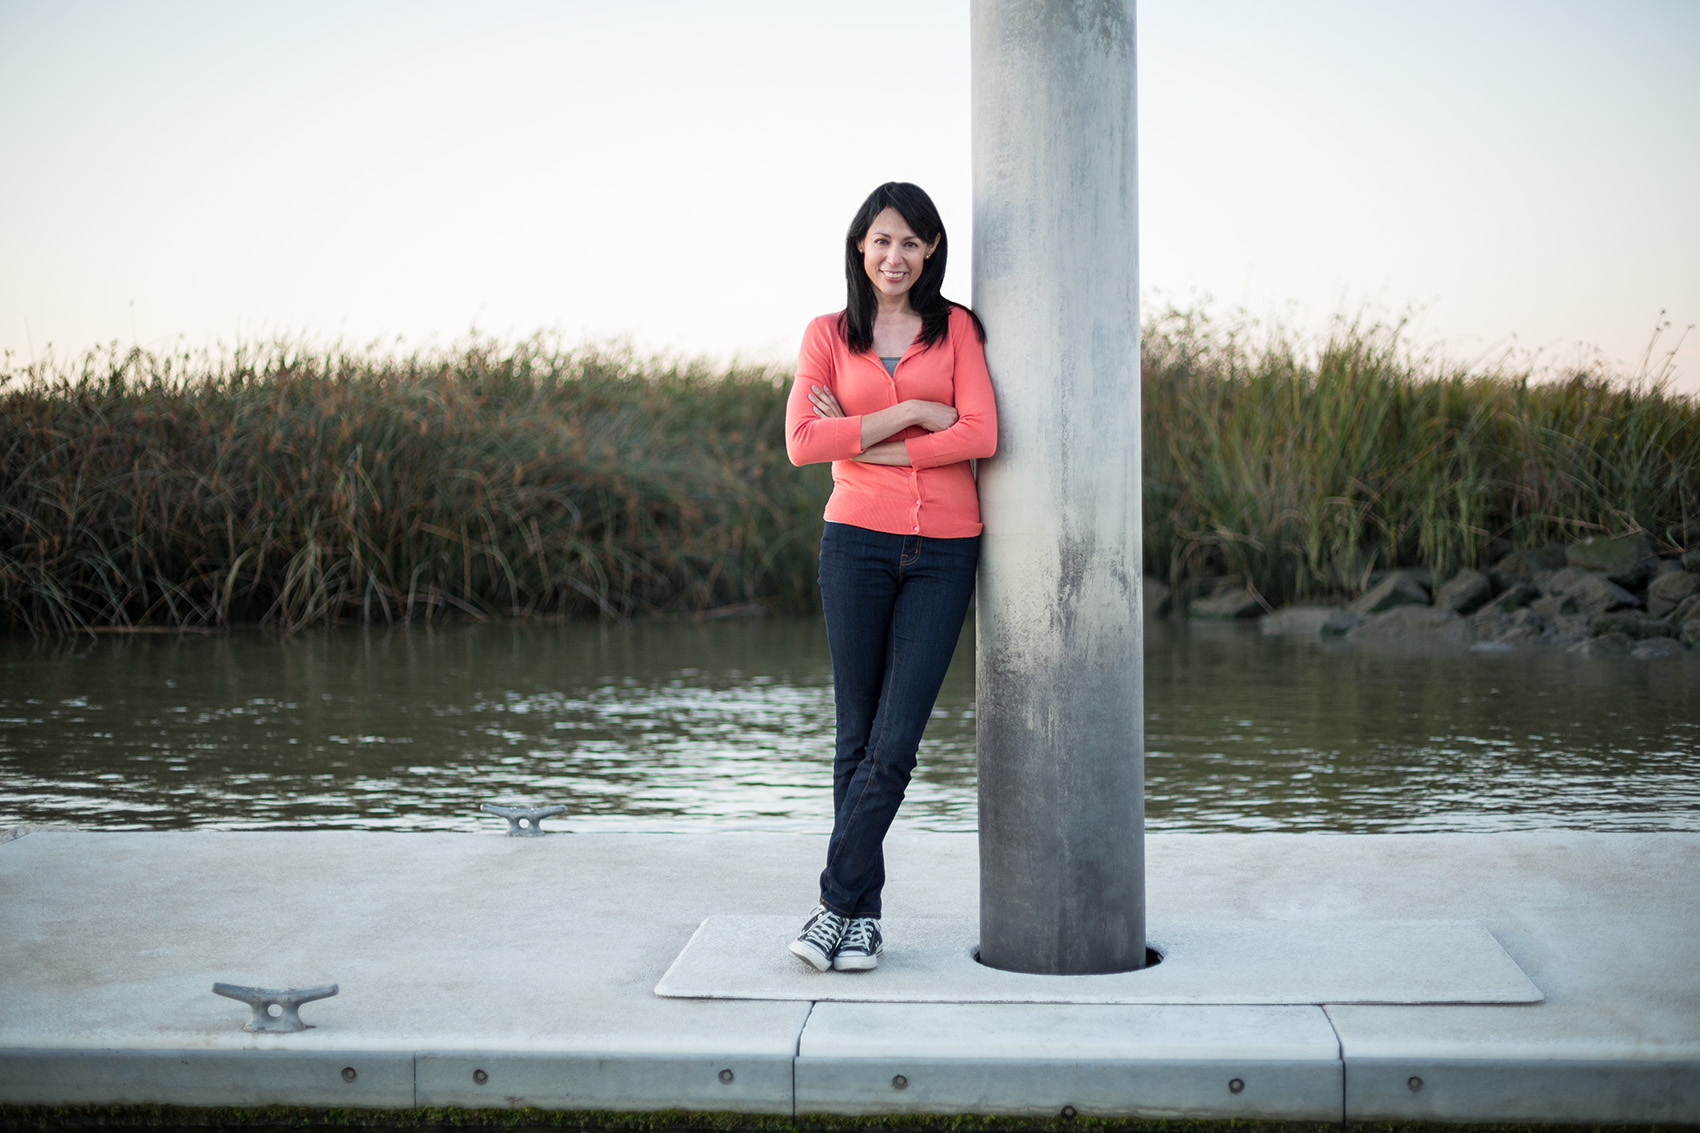 cute latino woman portrait outside leaning against a post by lake